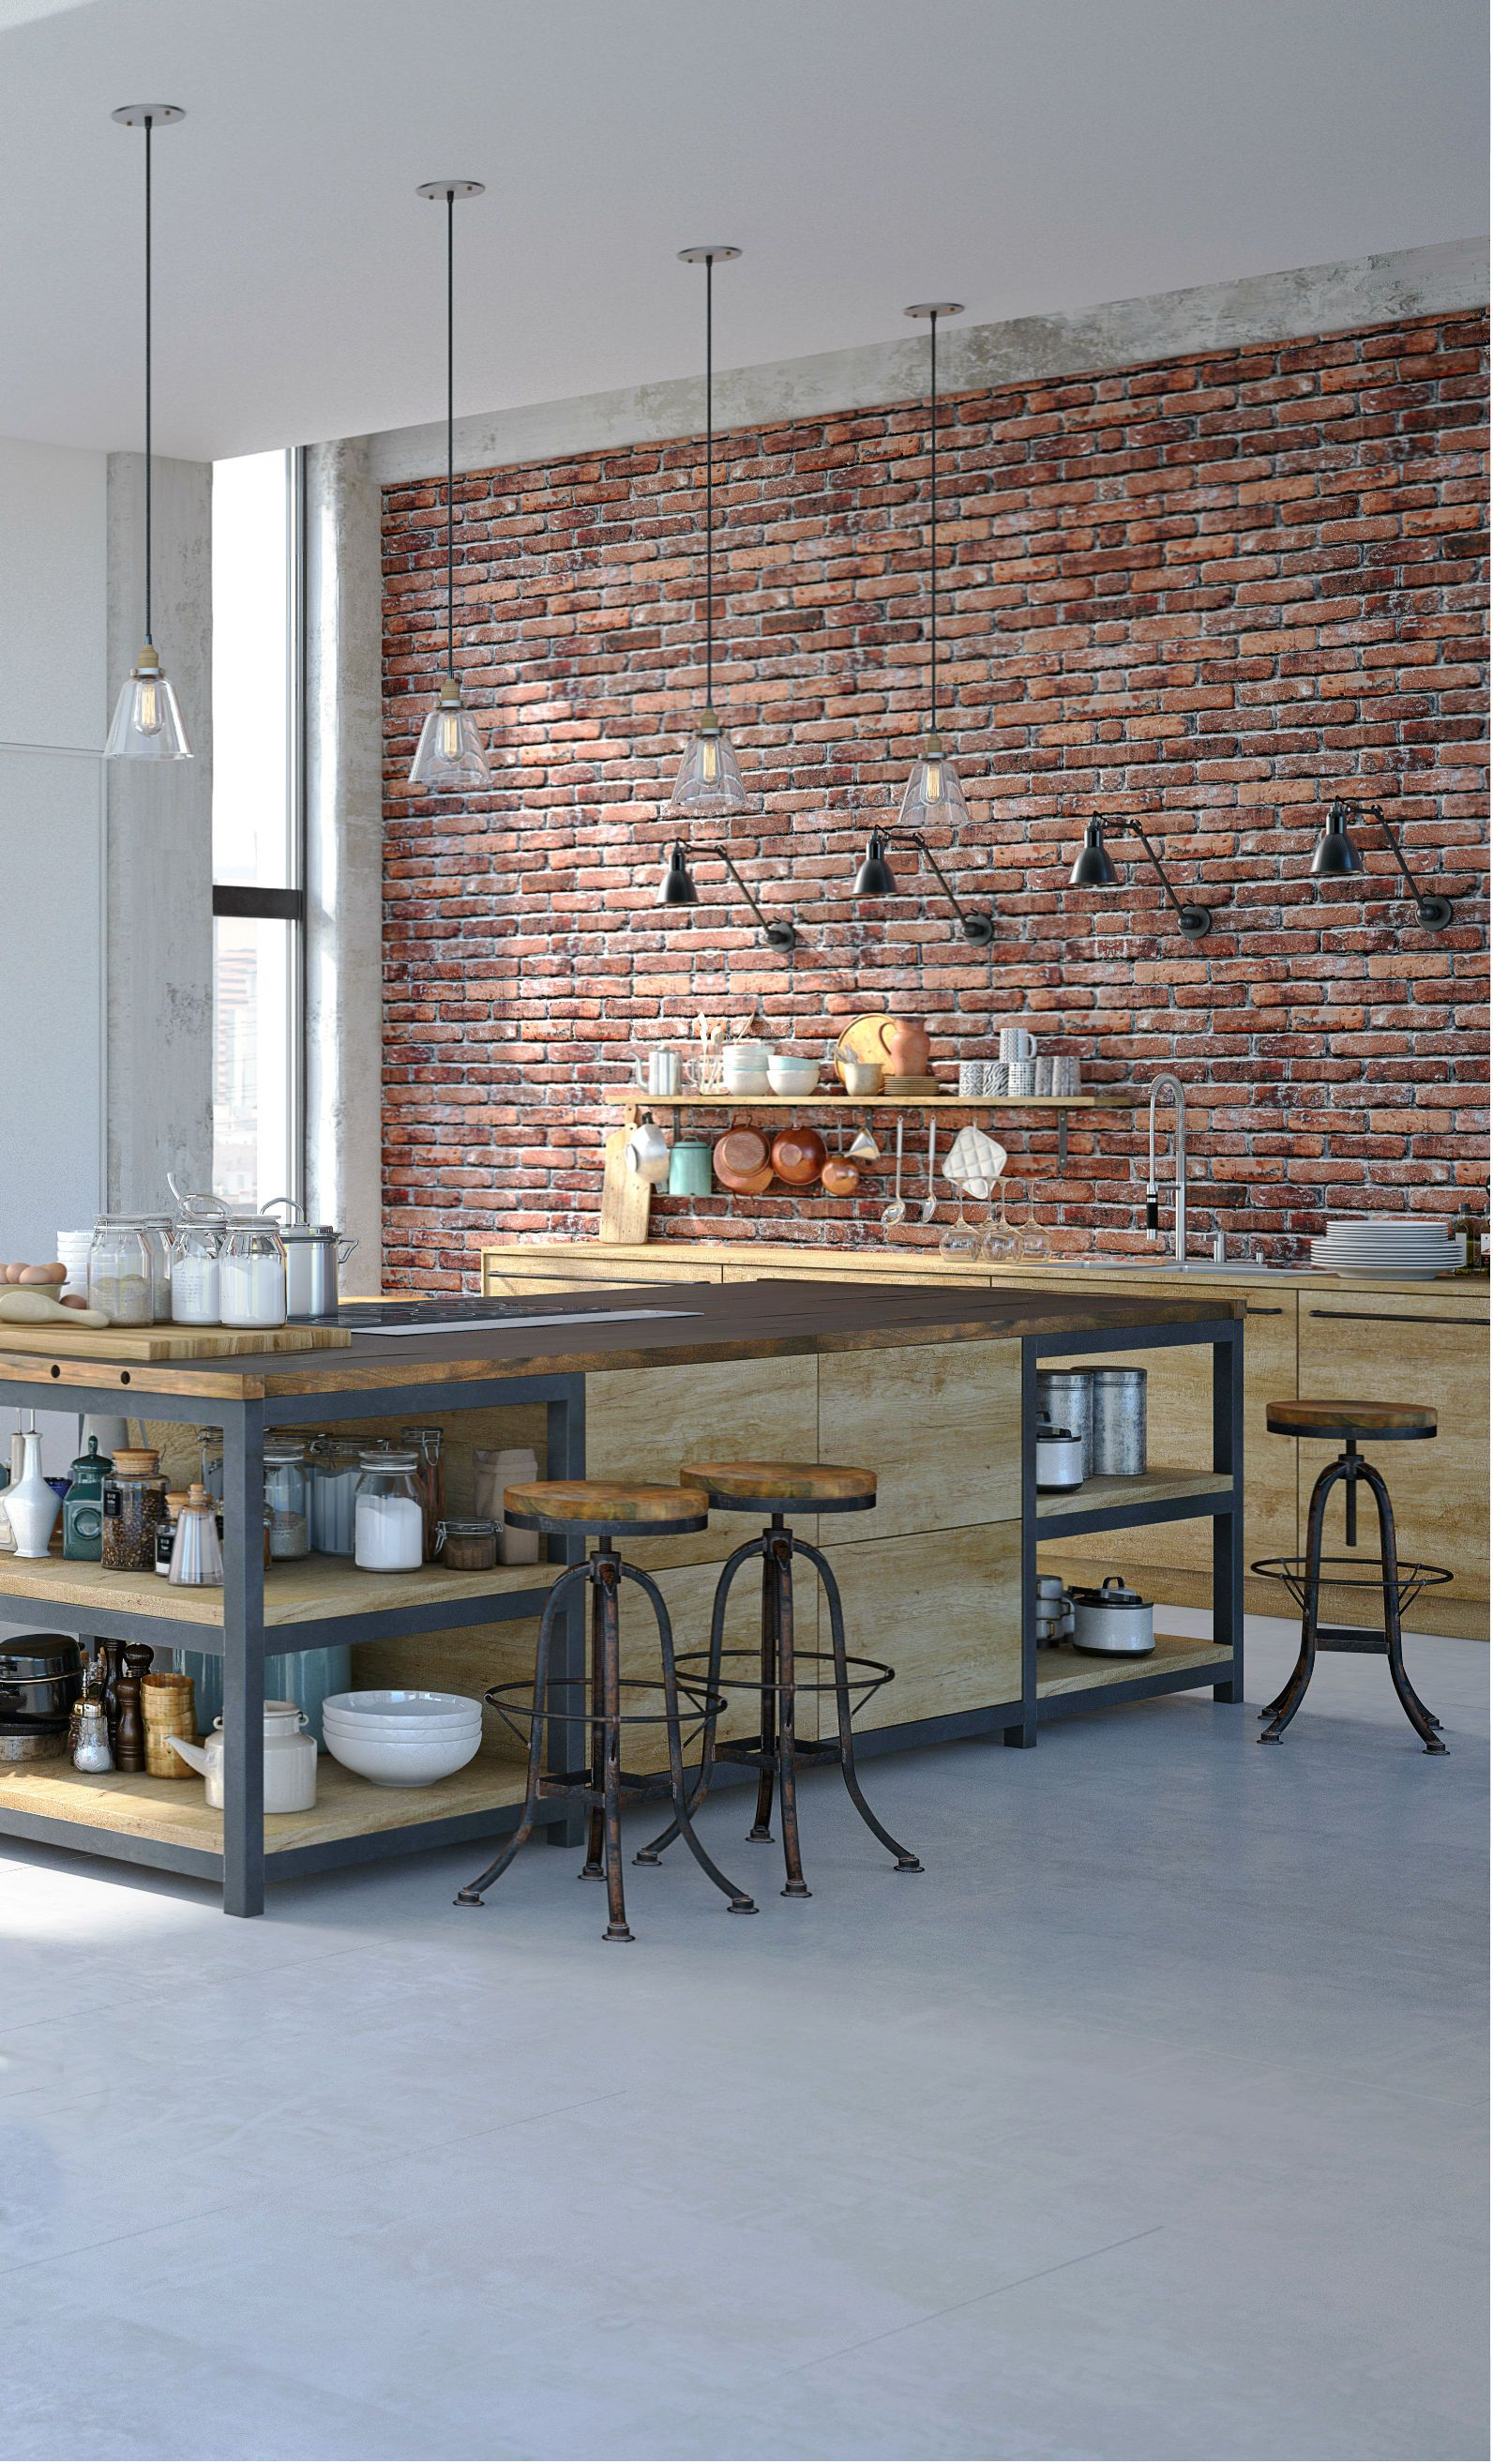 Industrial kitchen design with an amazing red brick veneer accent